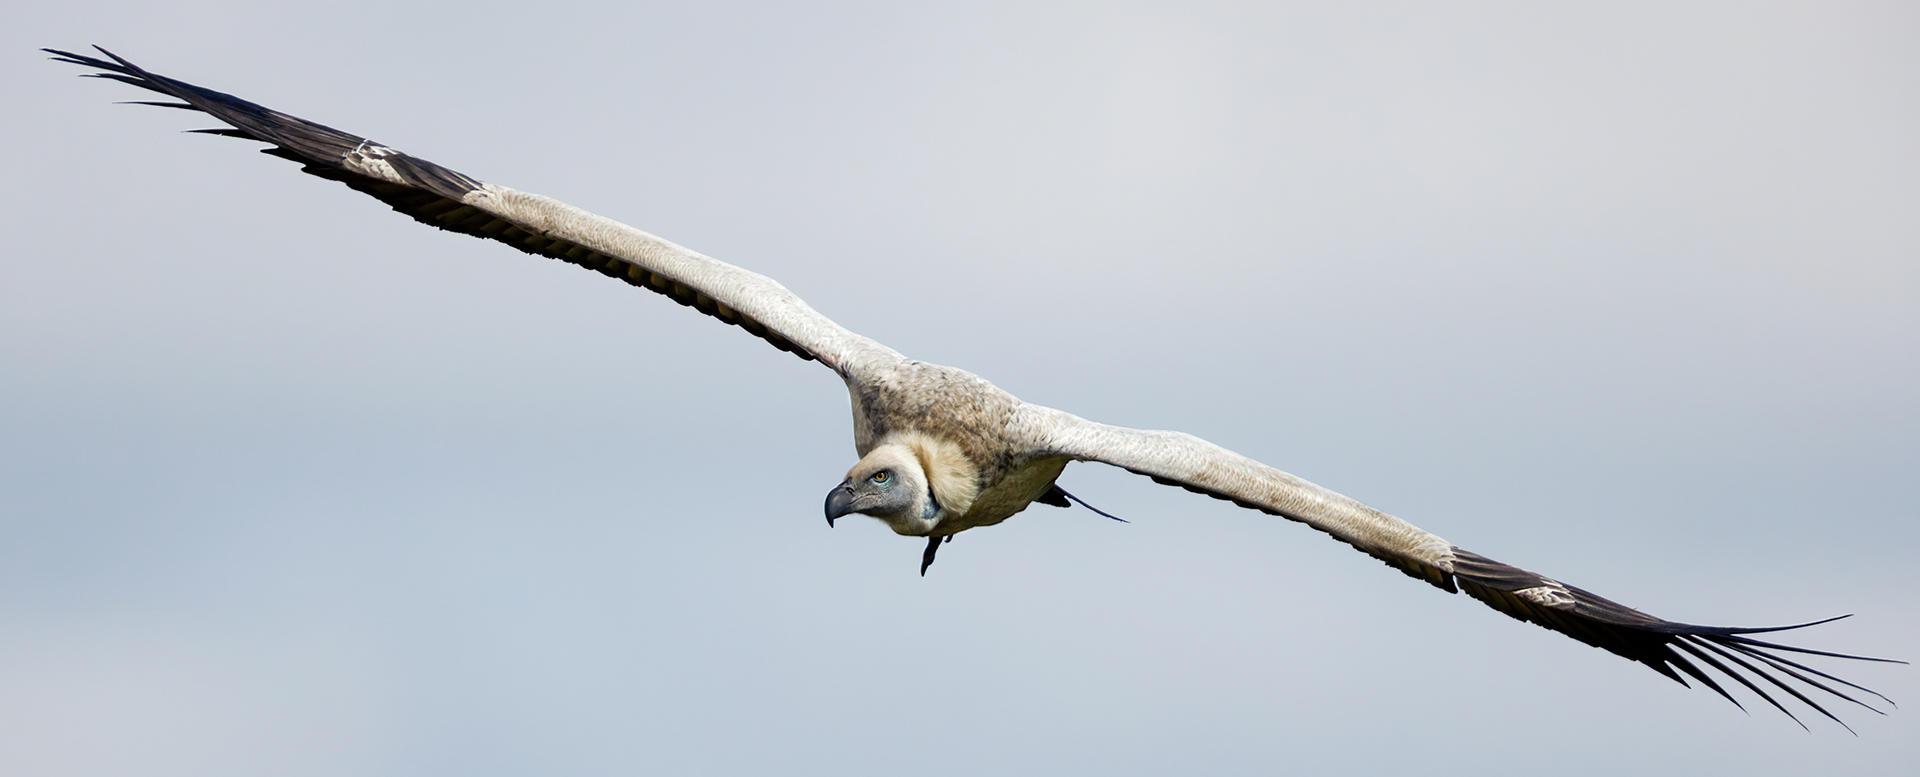 Name:  Cape Vulture Small.jpg Views: 82 Size:  415.8 KB